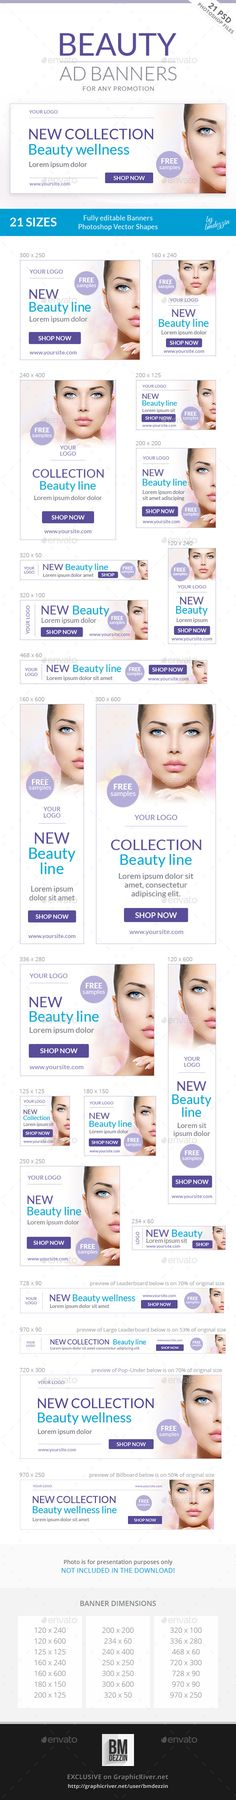 Beauty Ad Banners Design Template - Banners & Ads Web Template PSD. Download here: https://graphicriver.net/item/beauty-ad-banners/9639015?s_rank=19&ref=yinkira